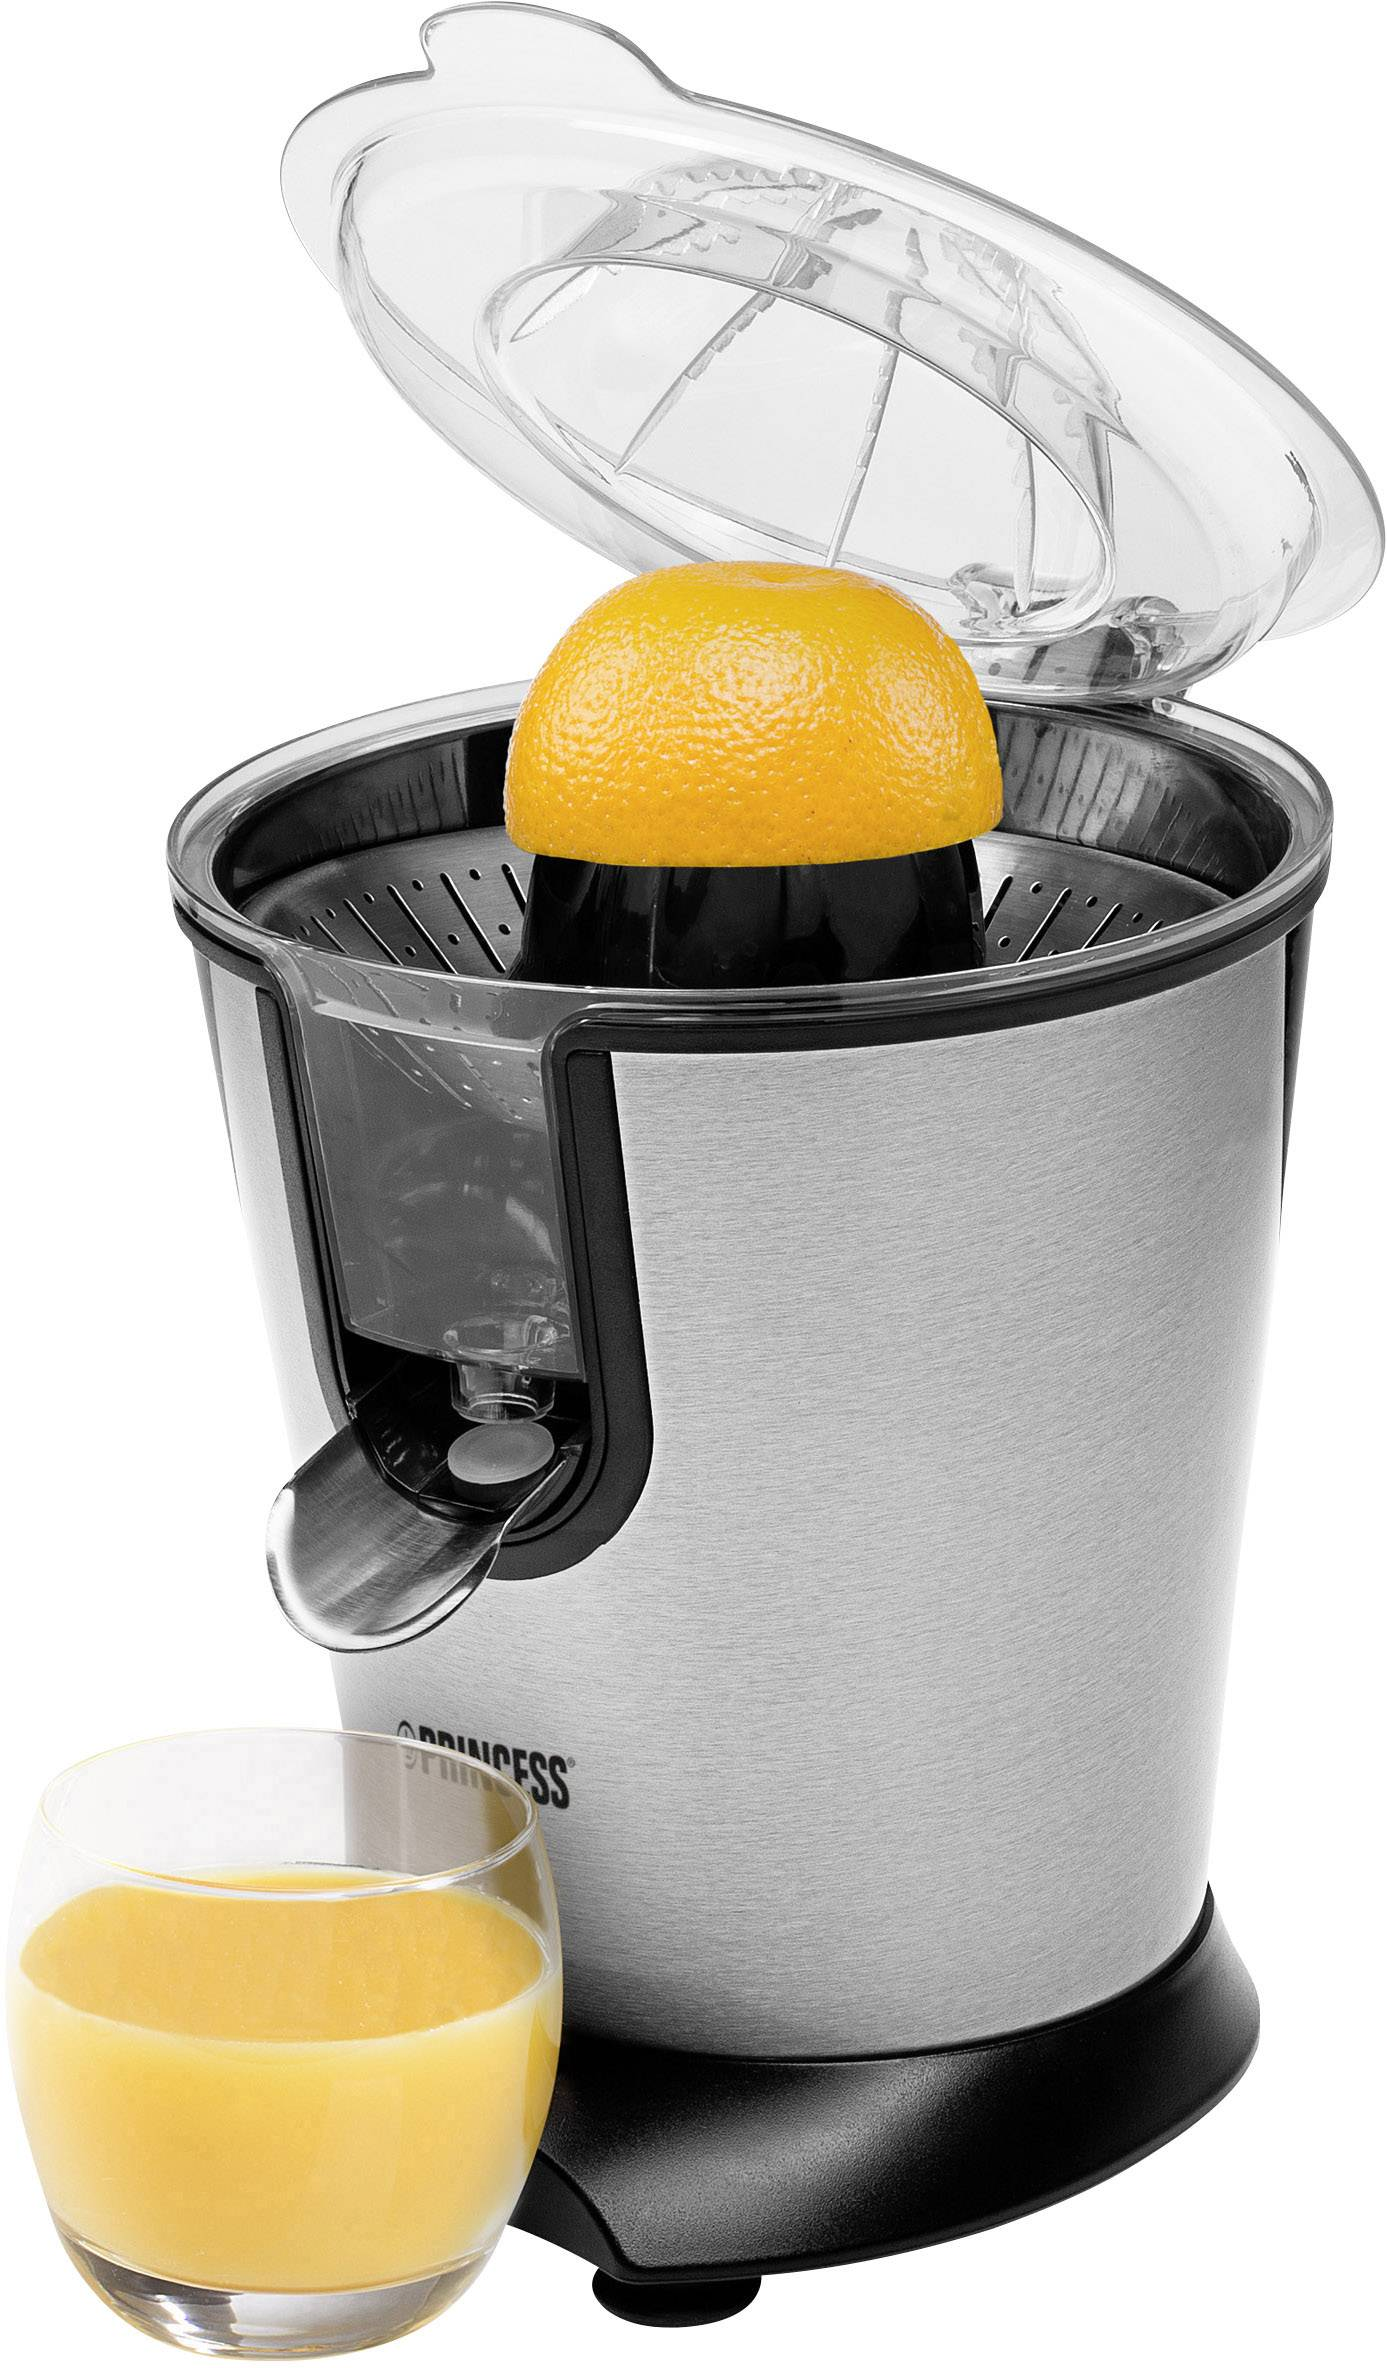 Stainless steel For all kinds of Citrus fruit 160 W Juicer Silver